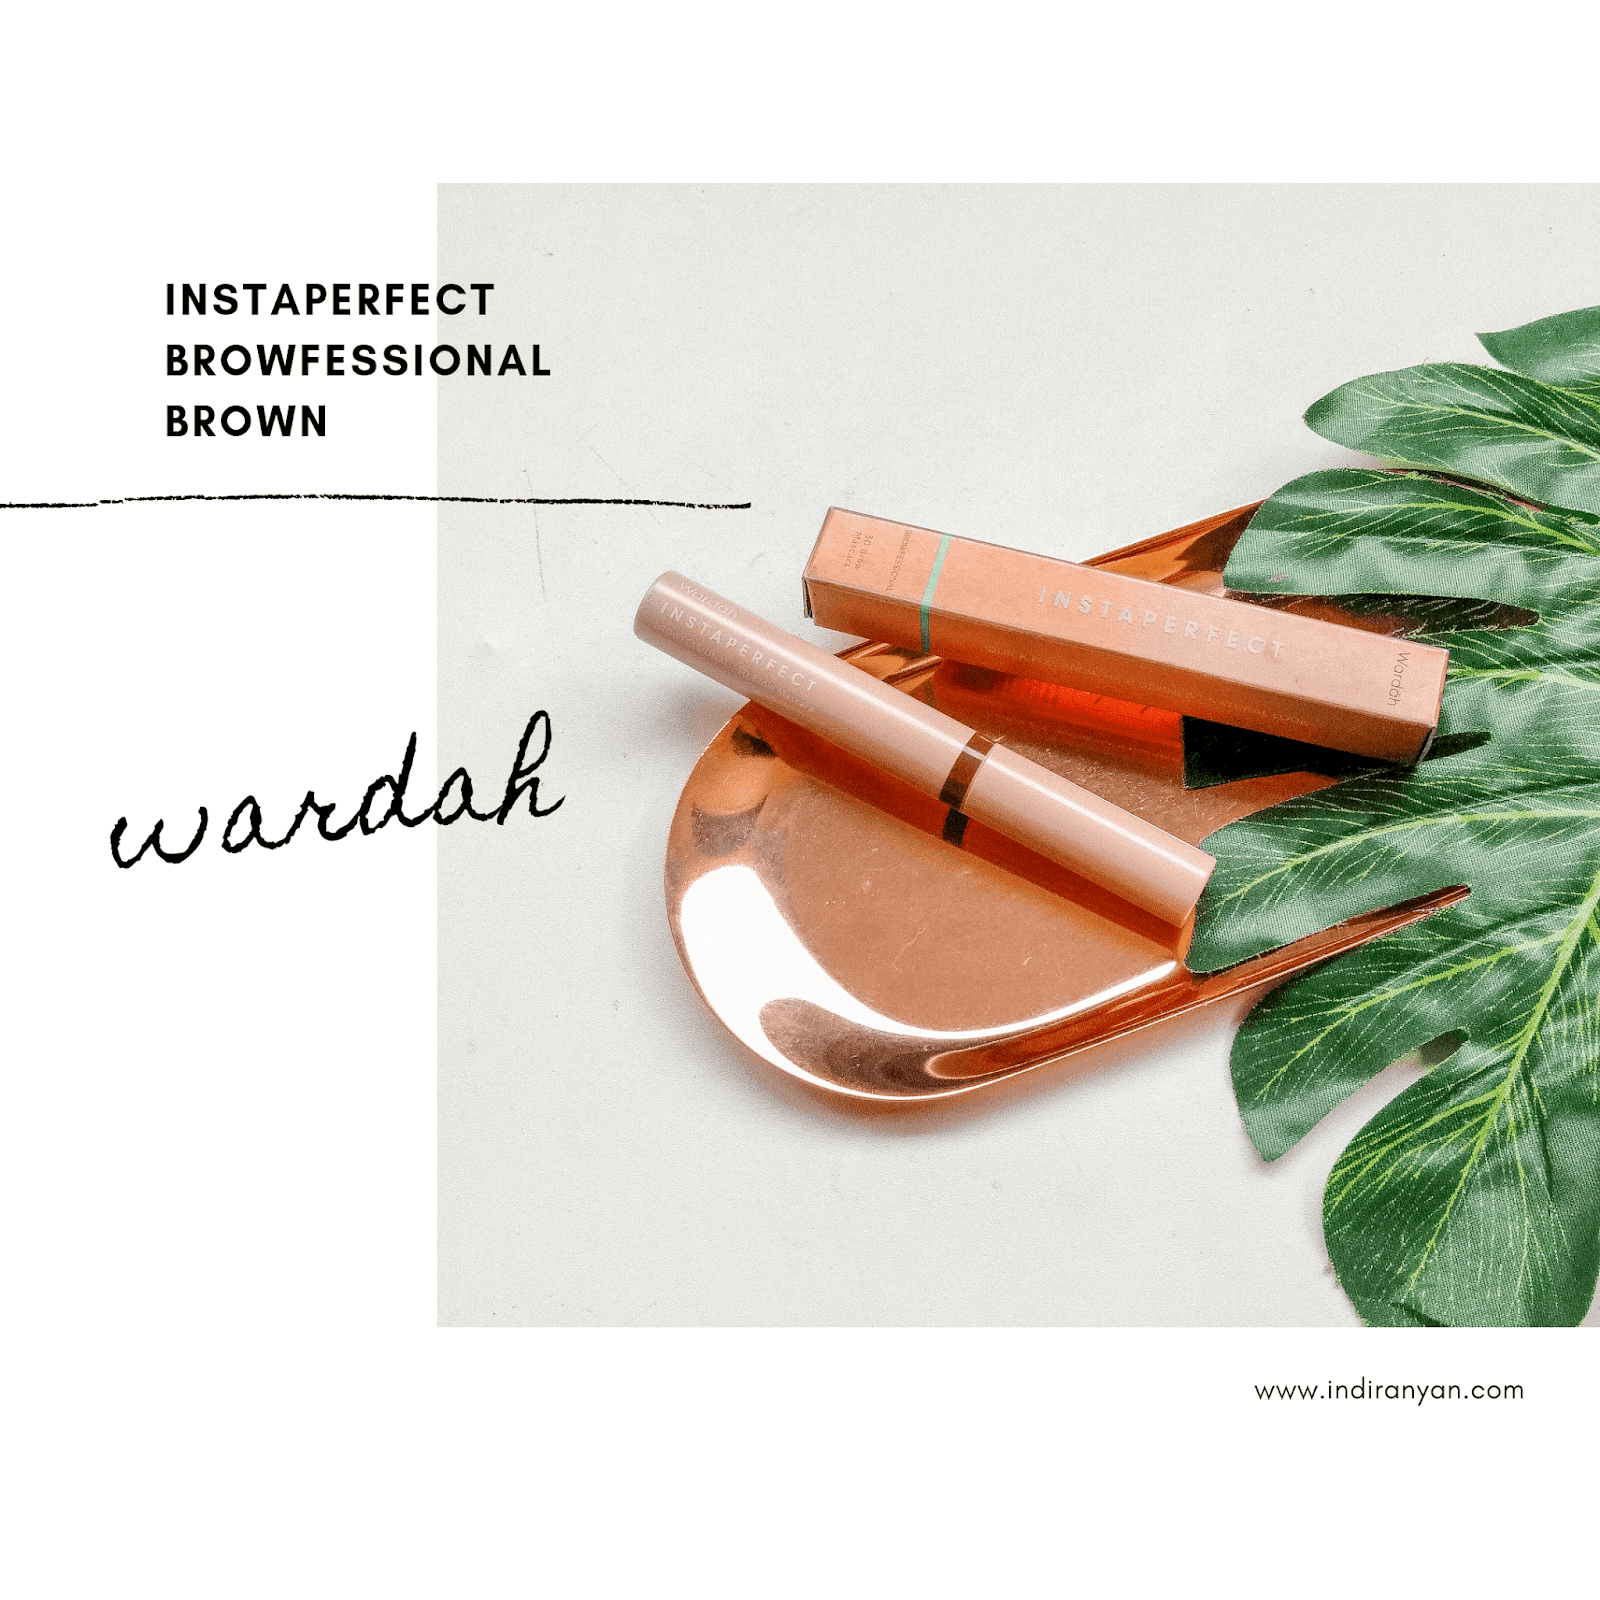 wardah-instaperfect-brow-mascara